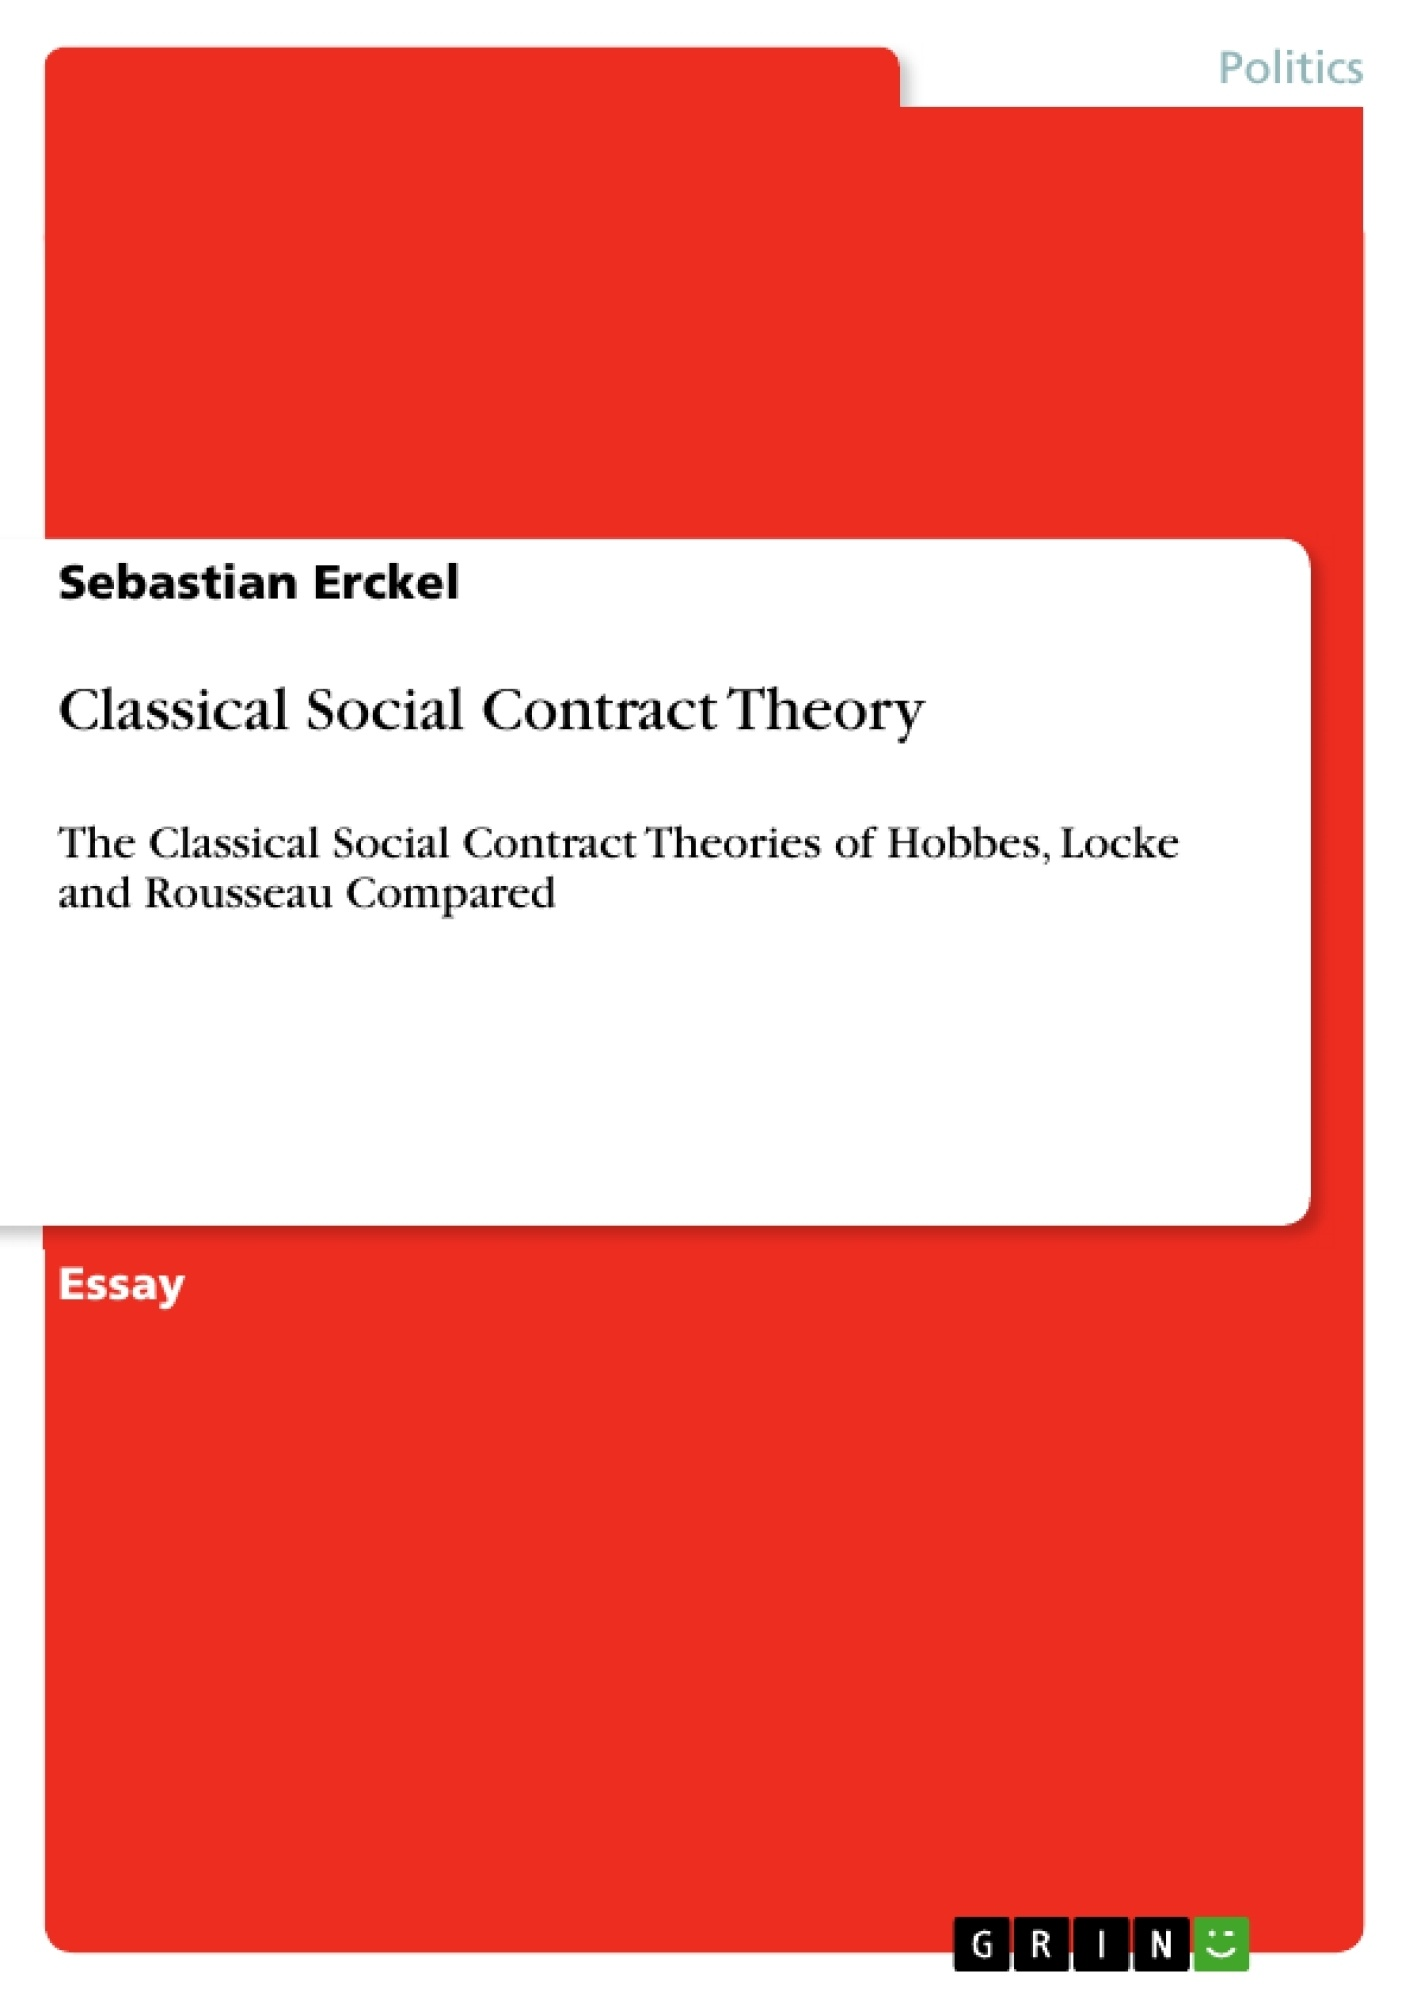 Title: Classical Social Contract Theory